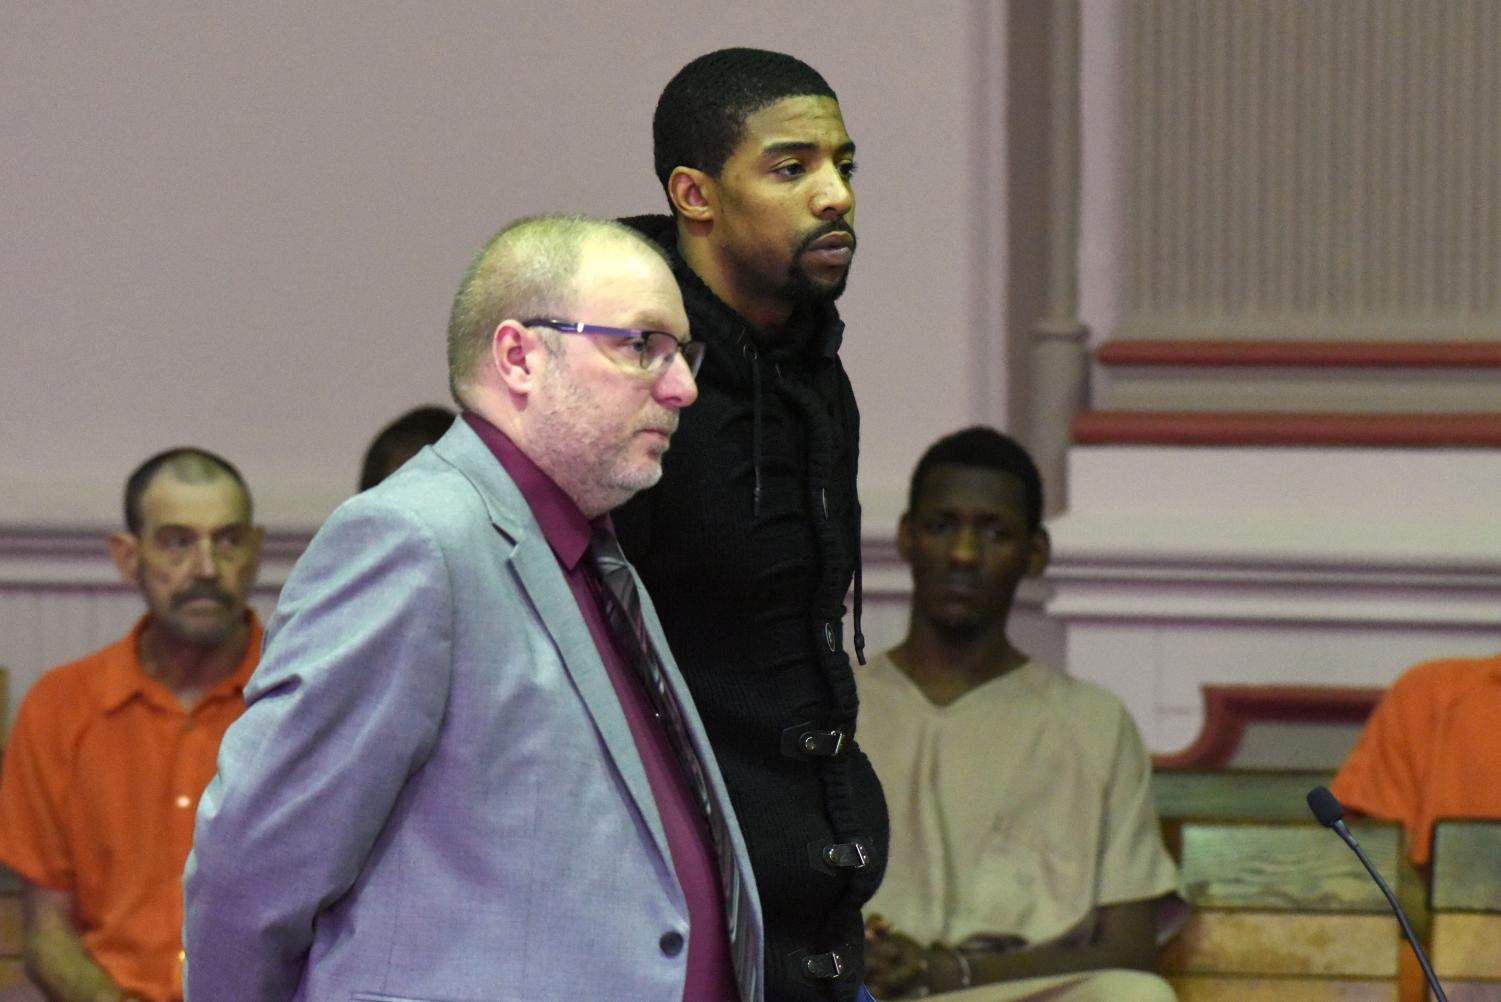 Devonte Kitchen, alongside defense attorney Keith Edwards, pleads guilty to all charges on Wednesday, Jan. 16 in Judge Mark Fleegle's court.